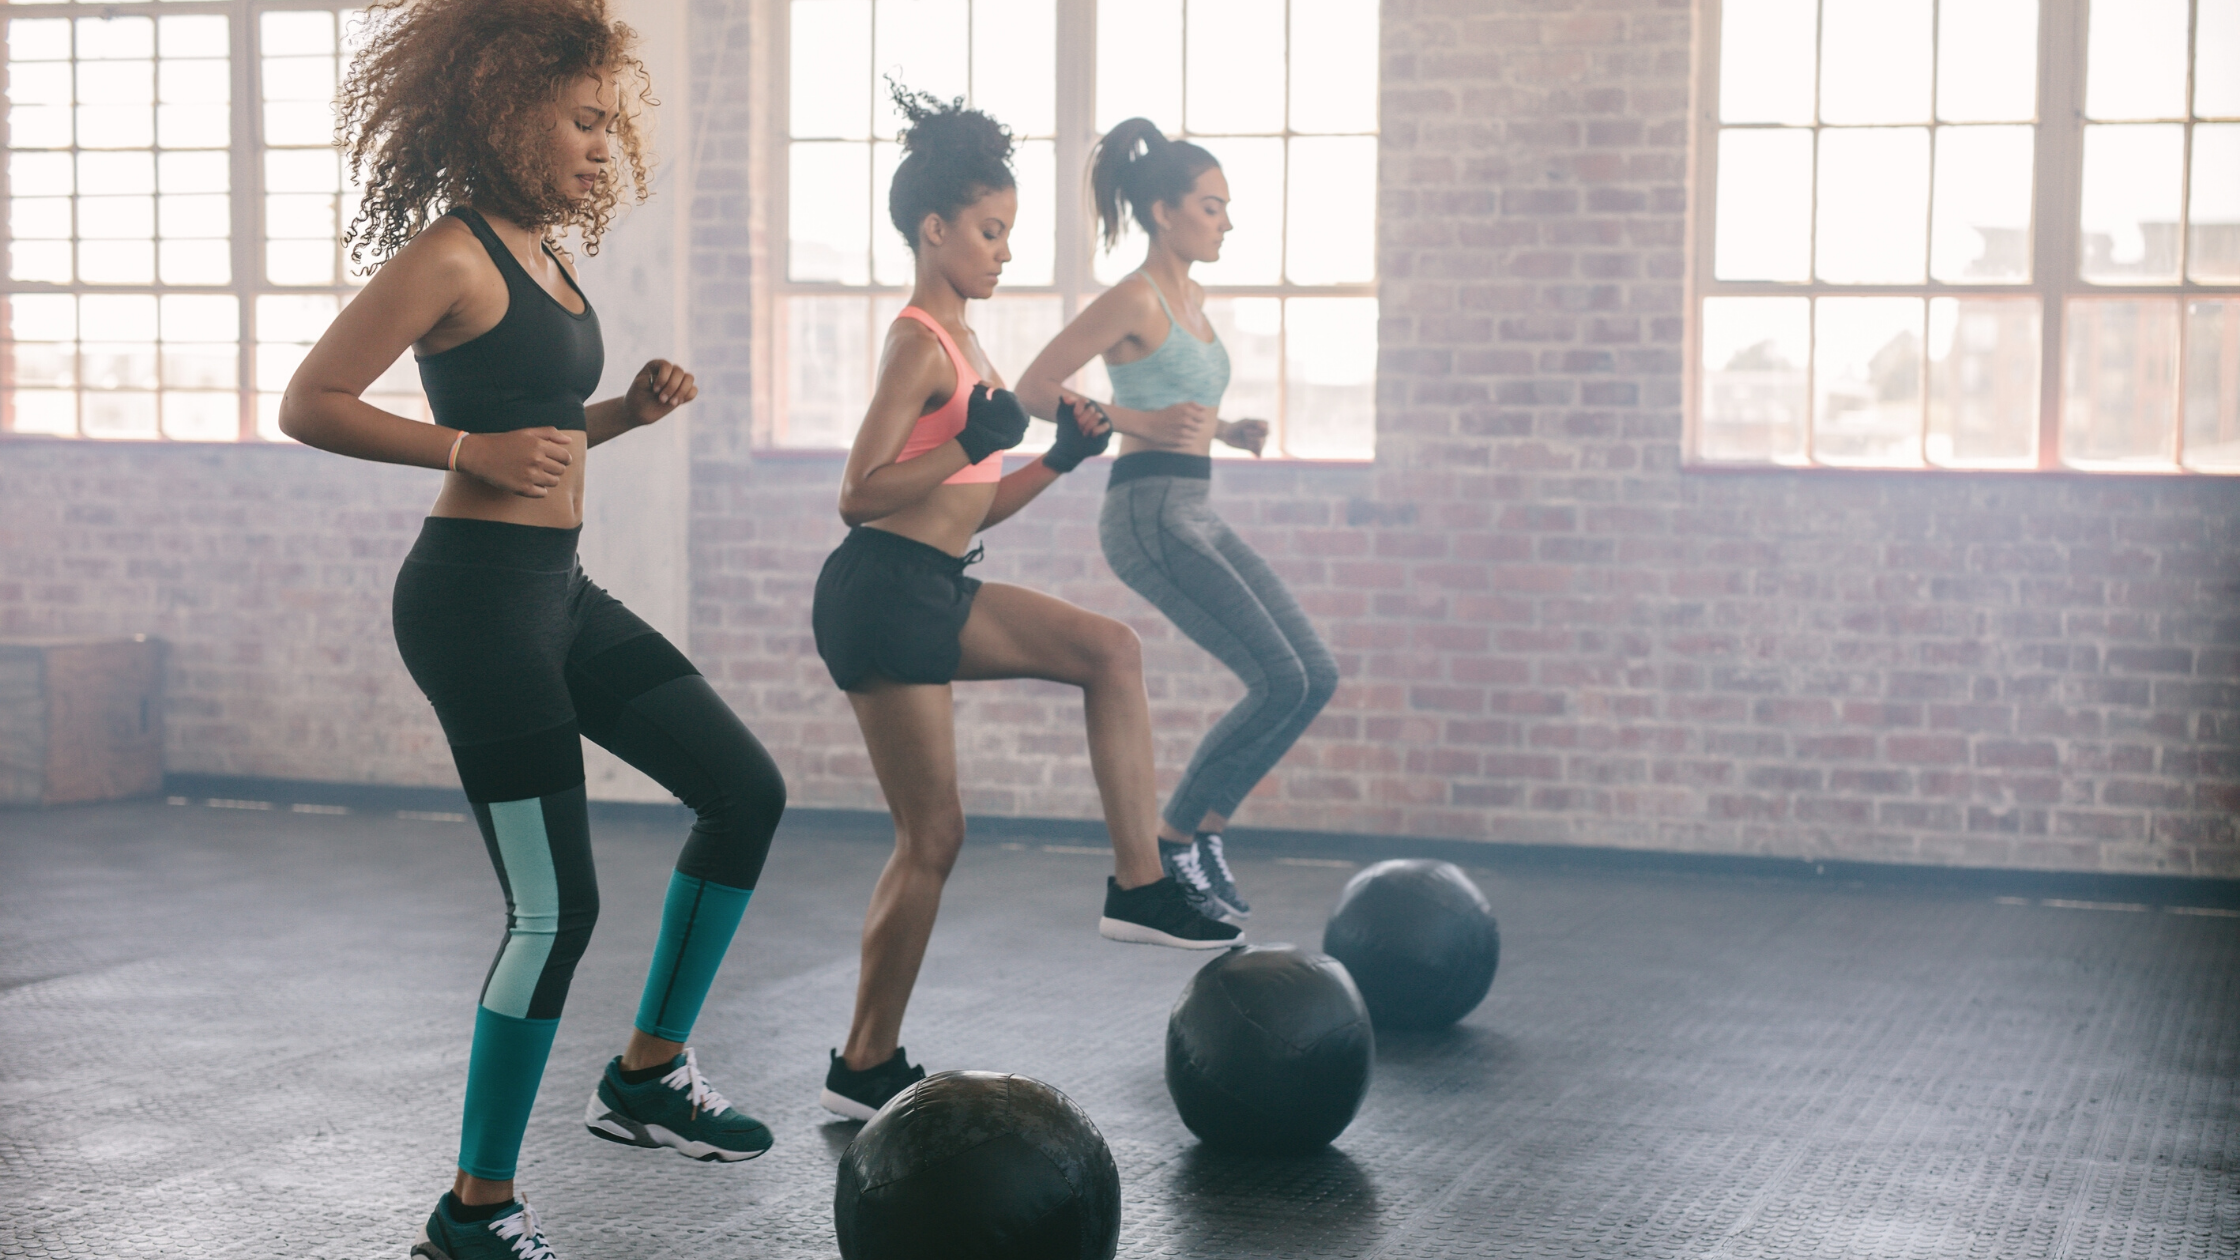 5 Post-COVID-19 Fitness Studio Customer Stats You Need to Know Before Re-Opening